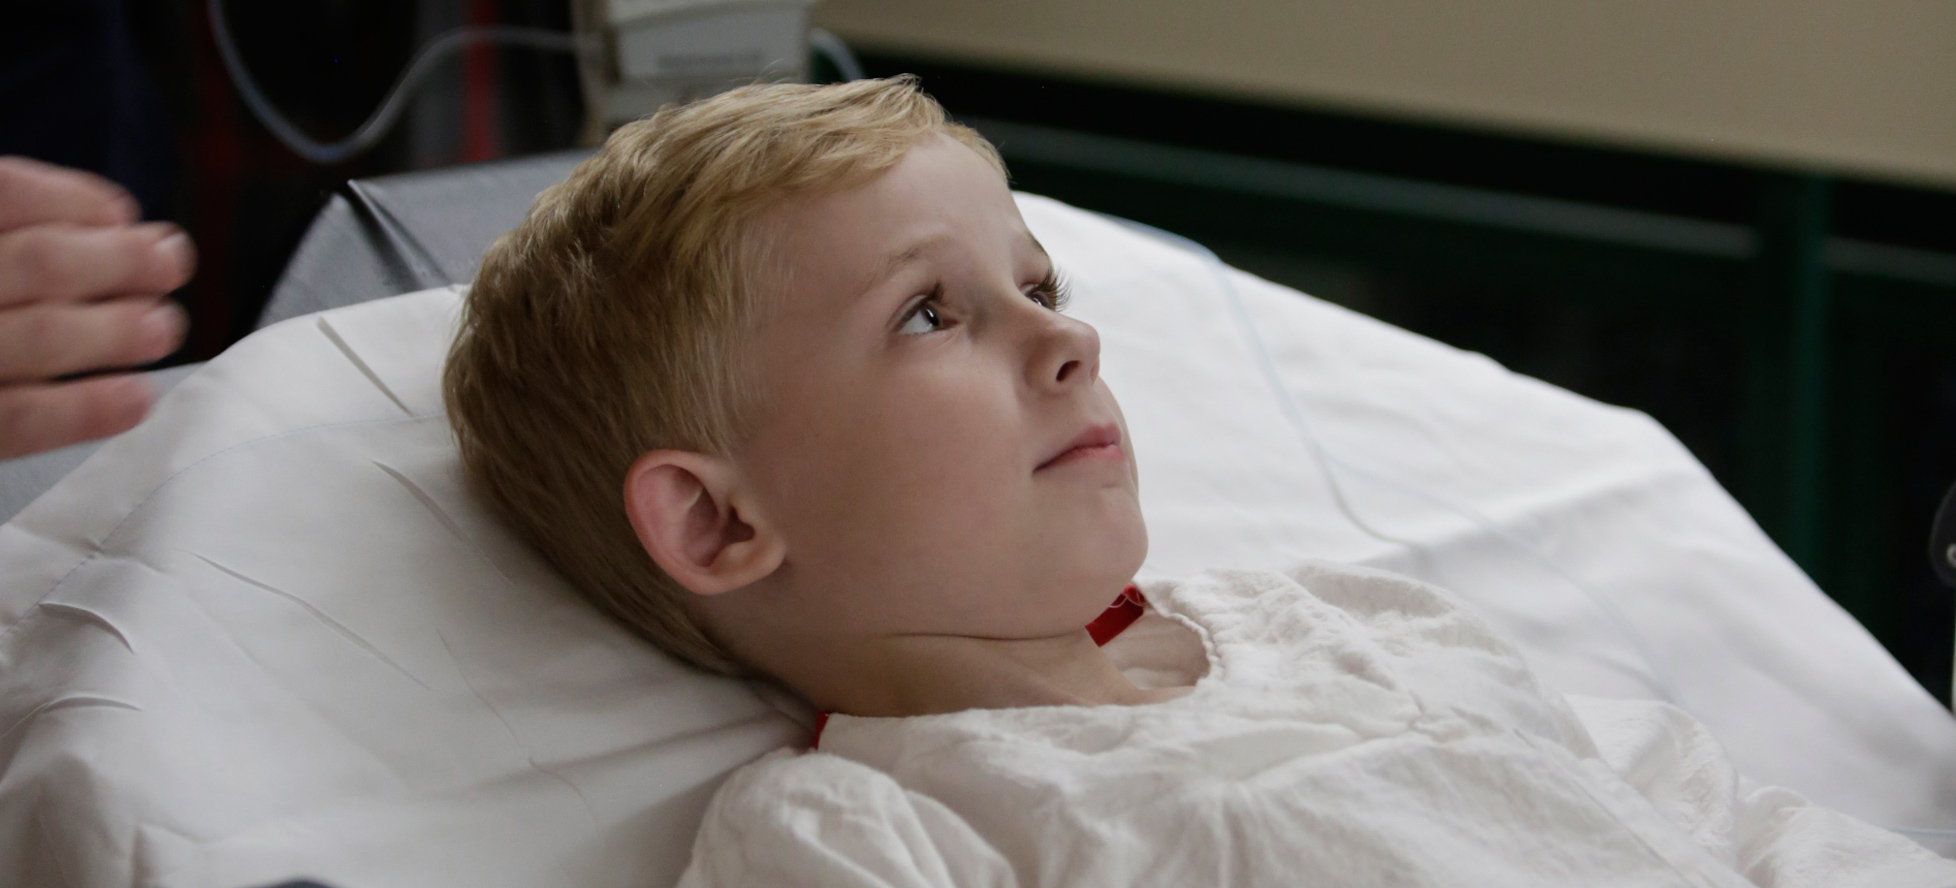 boy lying in hospital bed